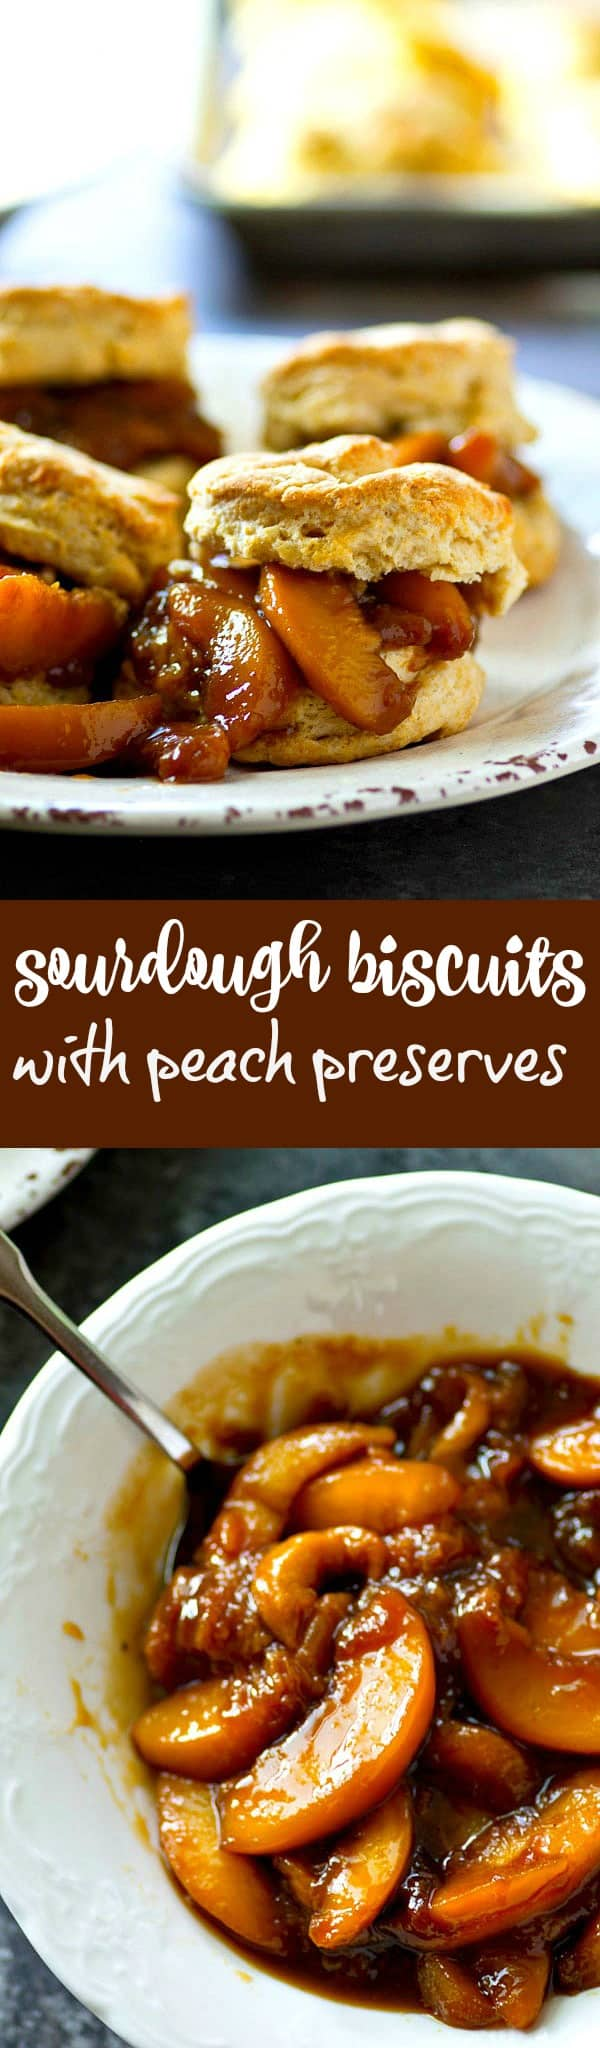 Flaky, insanely-flavorful sourdough biscuits are a match made in heaven with juicy fresh peach preserves! Summer in a biscuit.